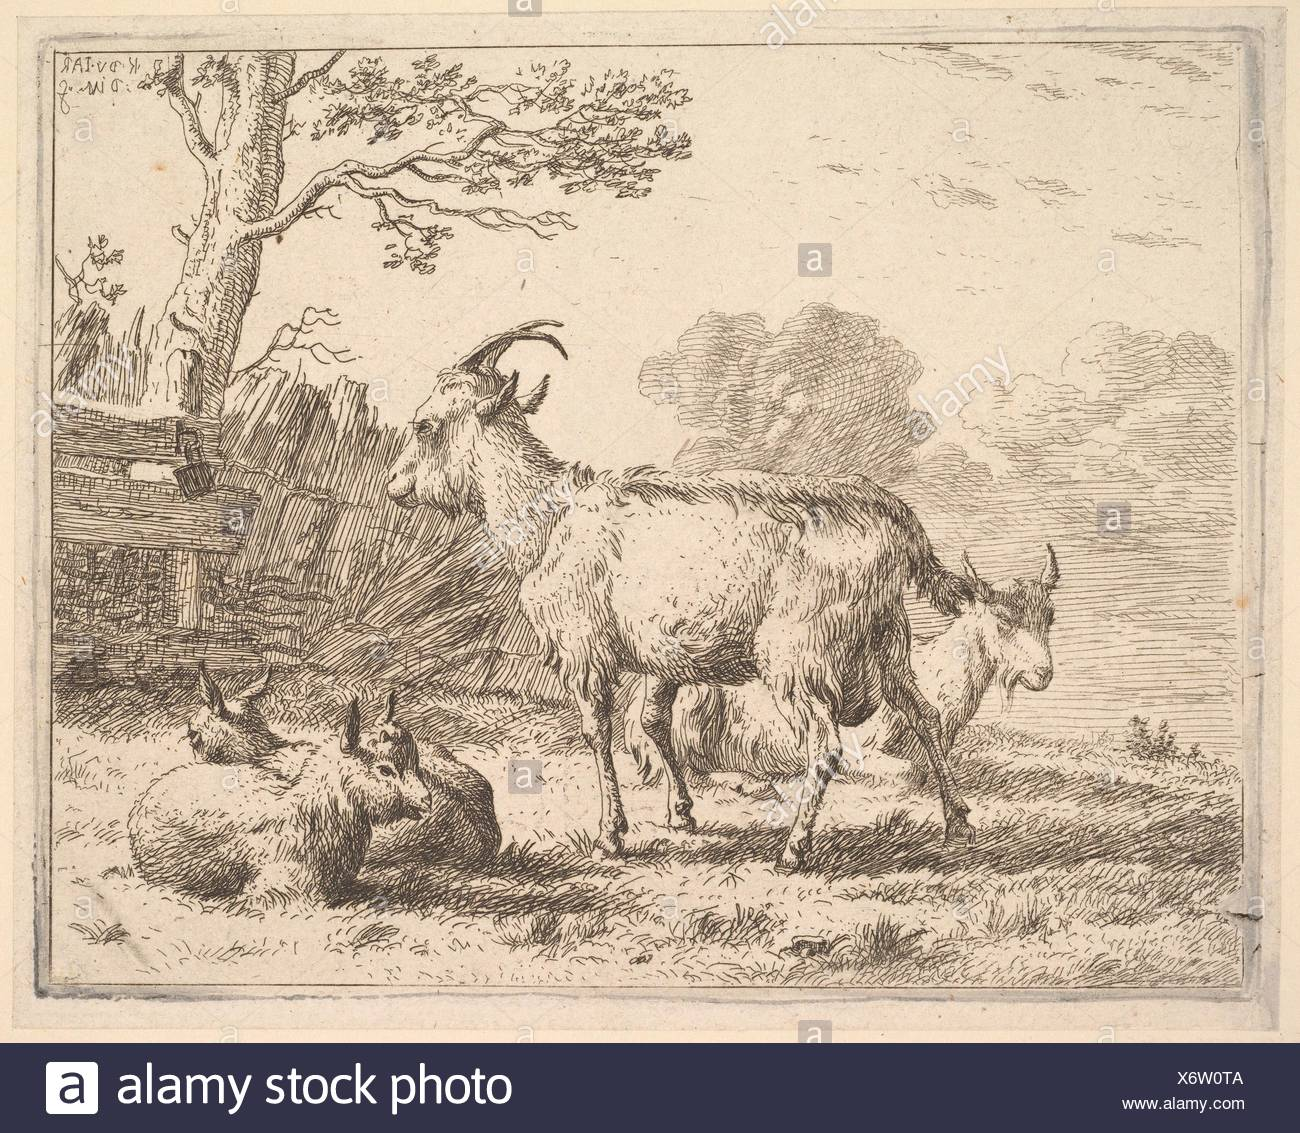 Four goats; at the back a nanny goat lies on the ground, in the middle a billy goat stands, in the front two kids lie on the ground, a fence and tree - Stock Image